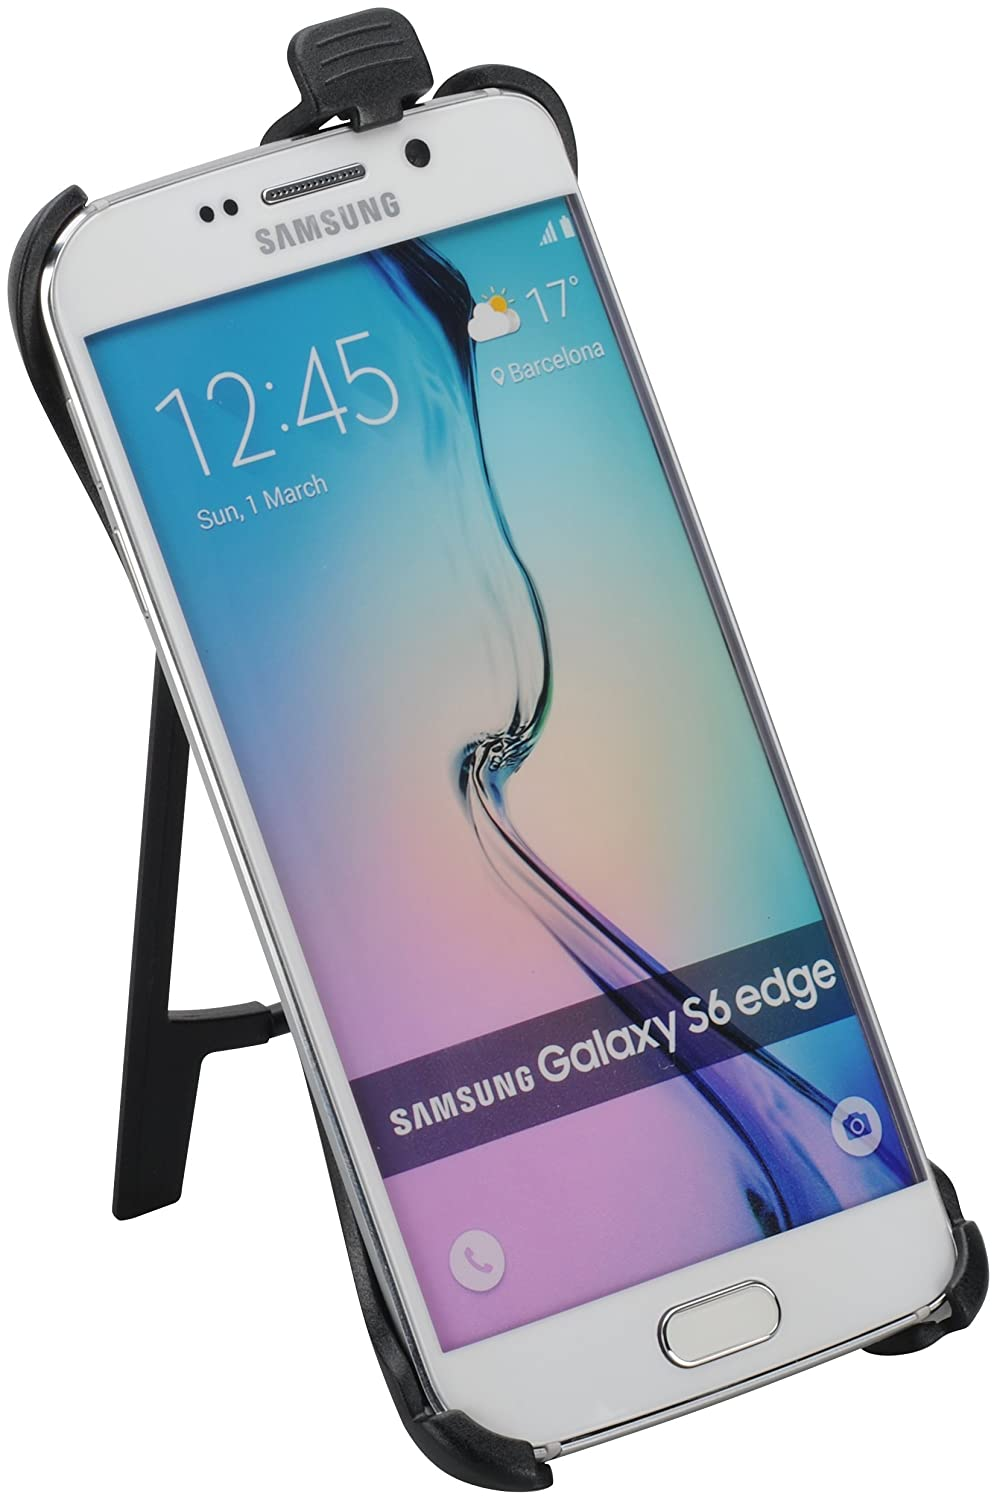 Herbert Richter 510 122 11 Smartphone Holder for Samsung Galaxy A5